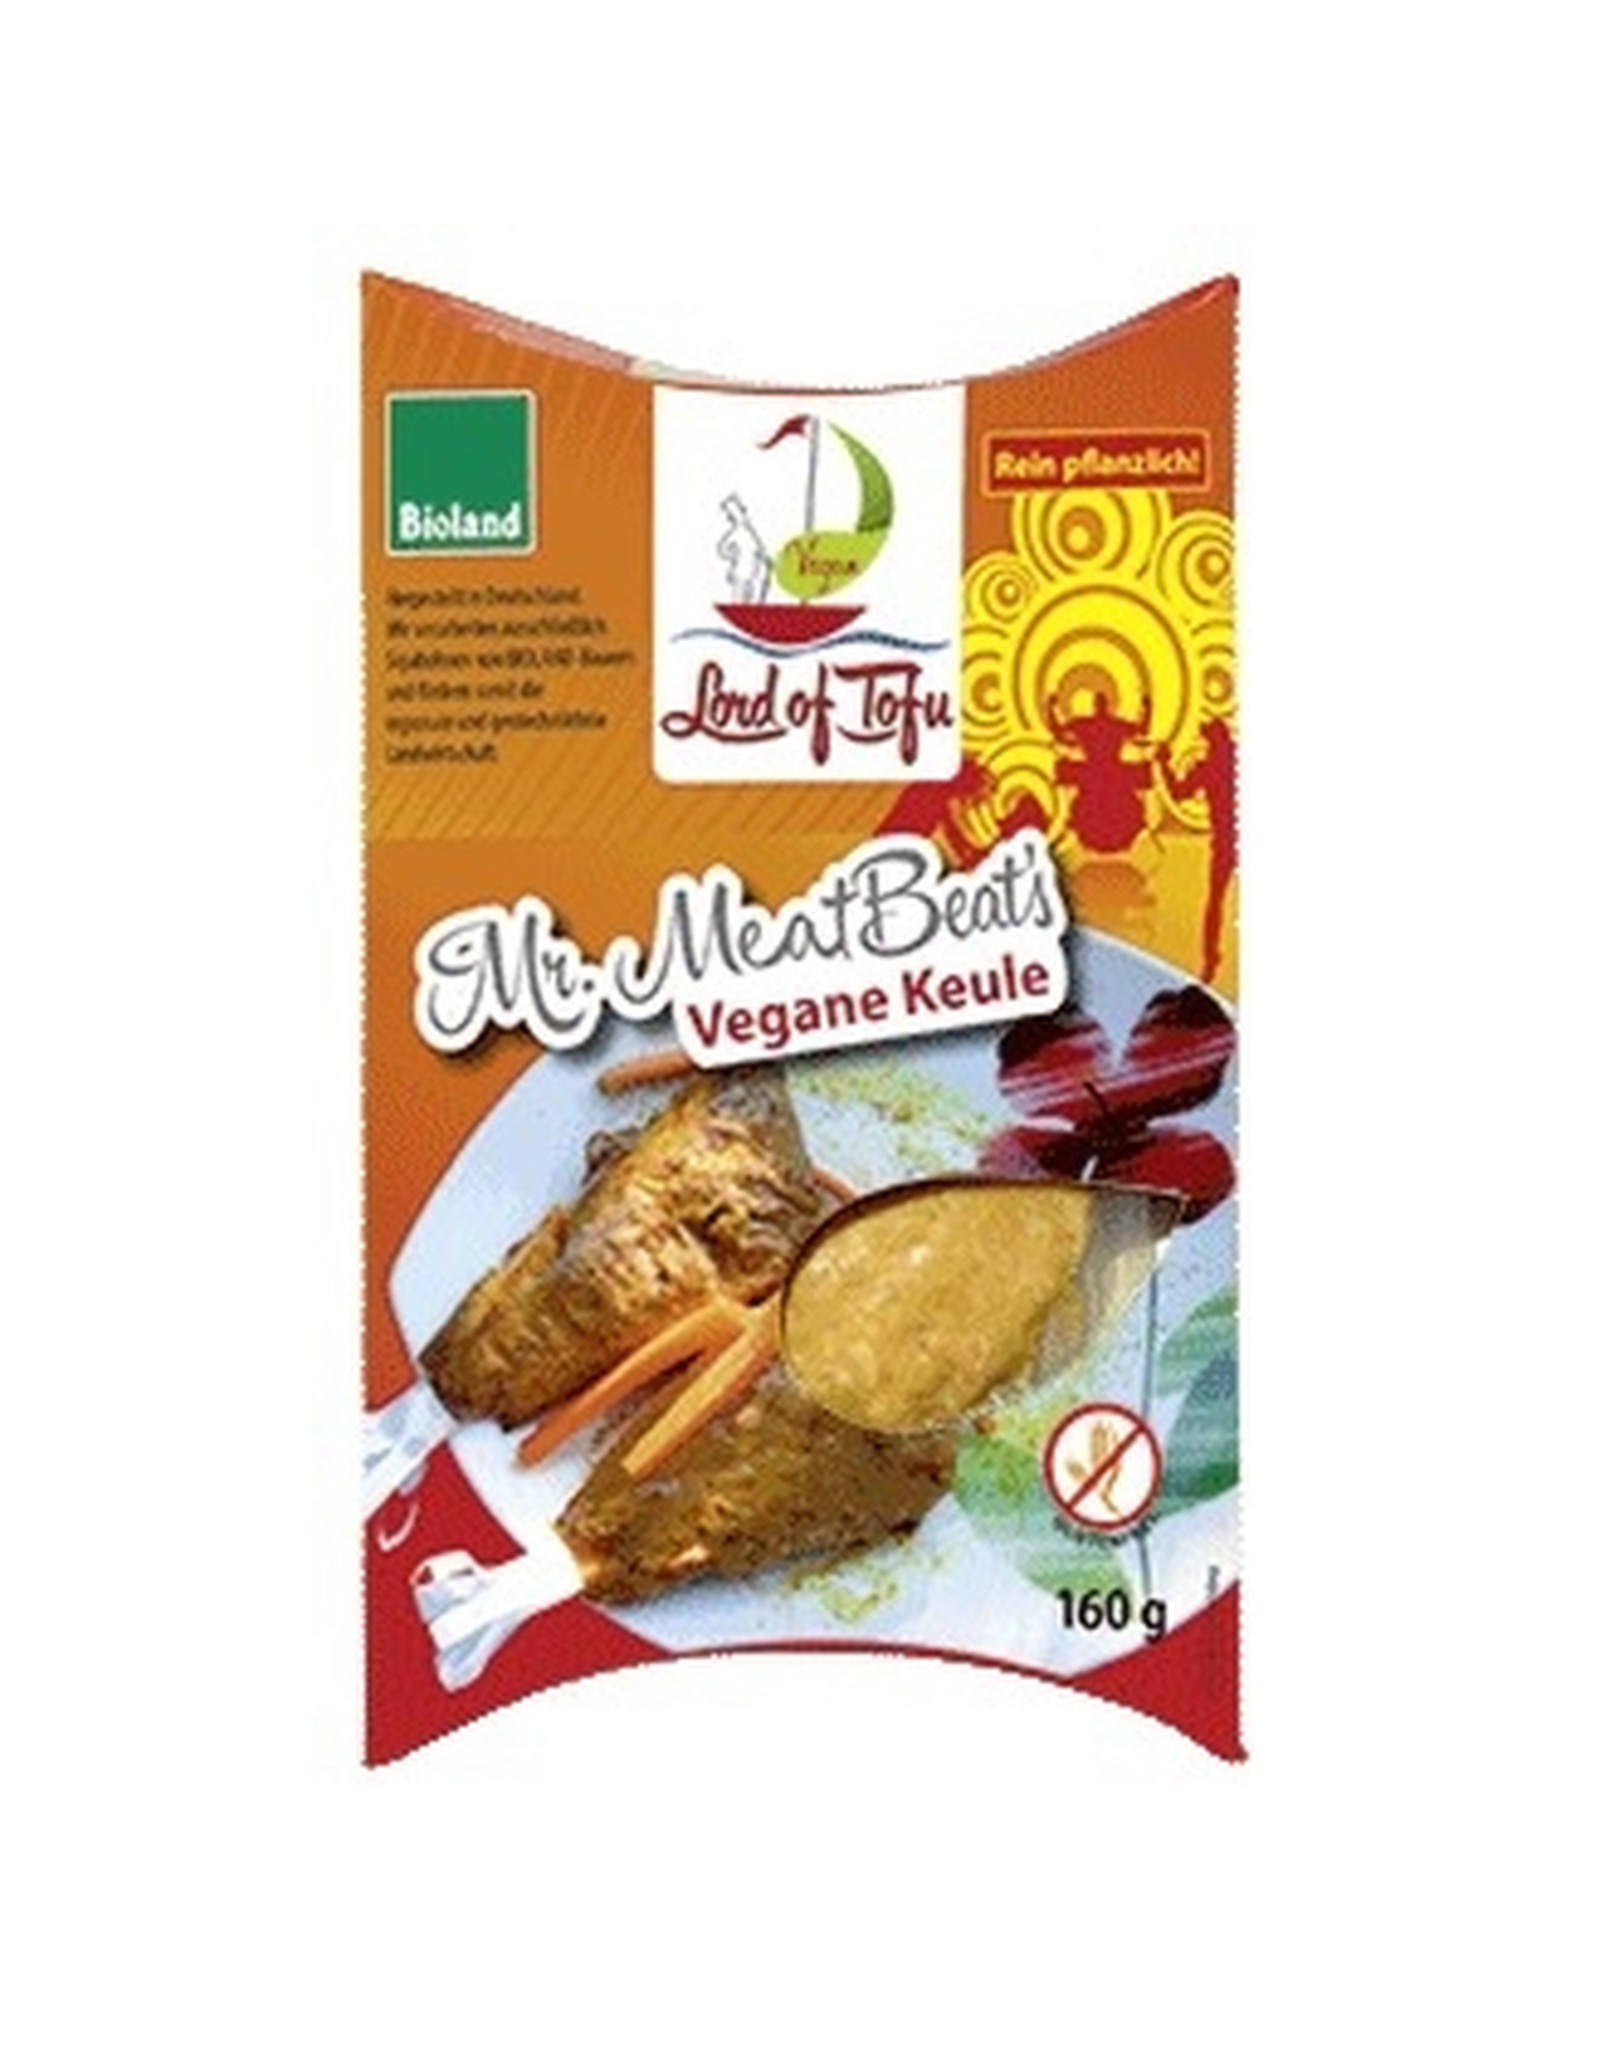 Lord of Tofu Mr.Meatbeat's Pata vegana 160g